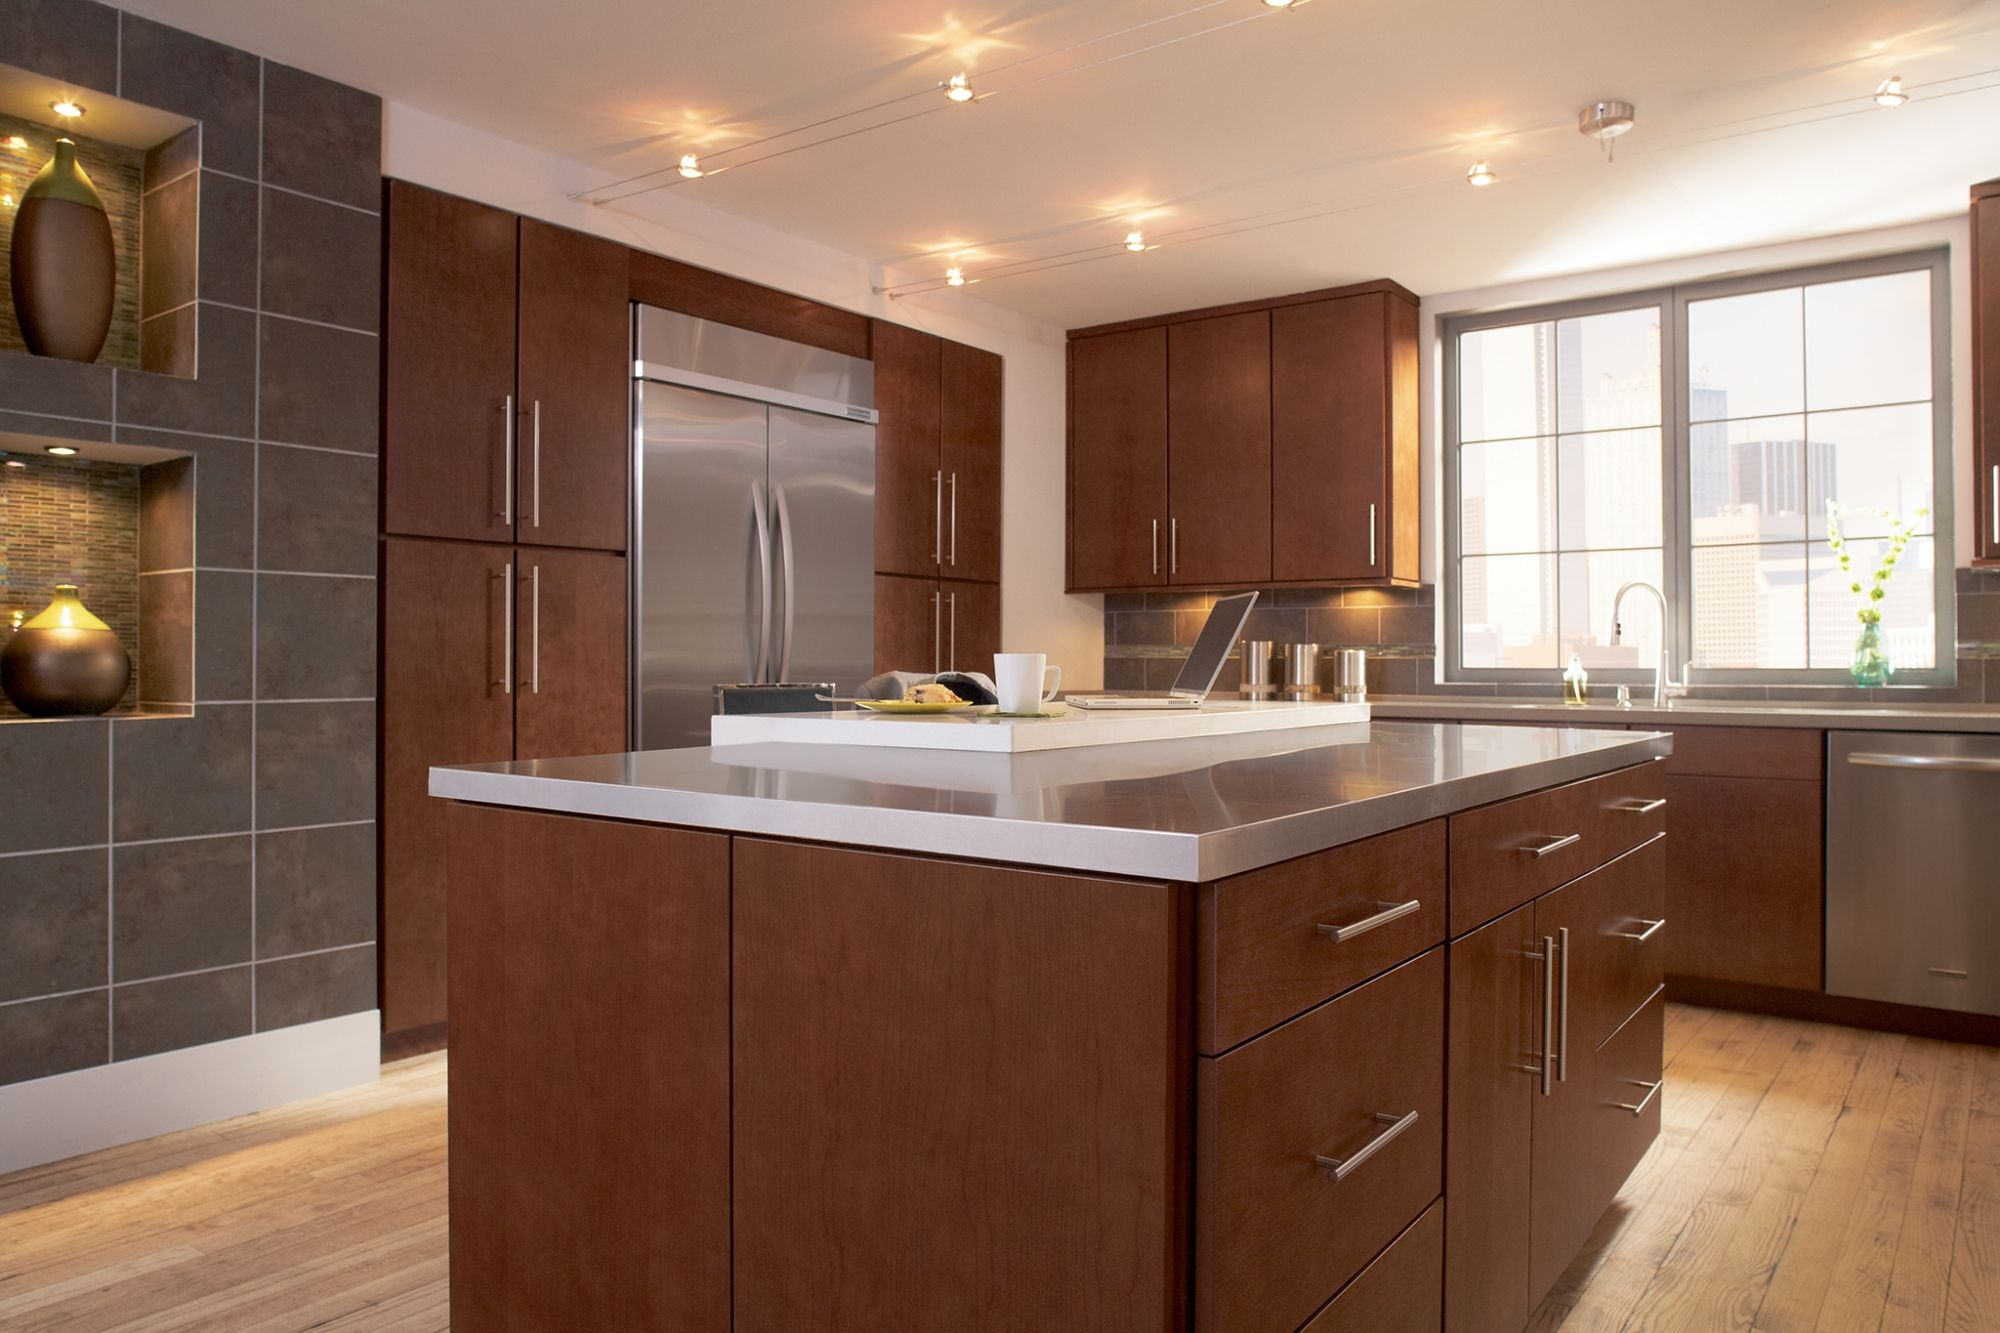 Full Overlay Cabinets Modern Kitchen Cabinets Sydney Collection Kitchen Cabinet Styles Beautiful Kitchen Cabinets Modern Kitchen Cabinets